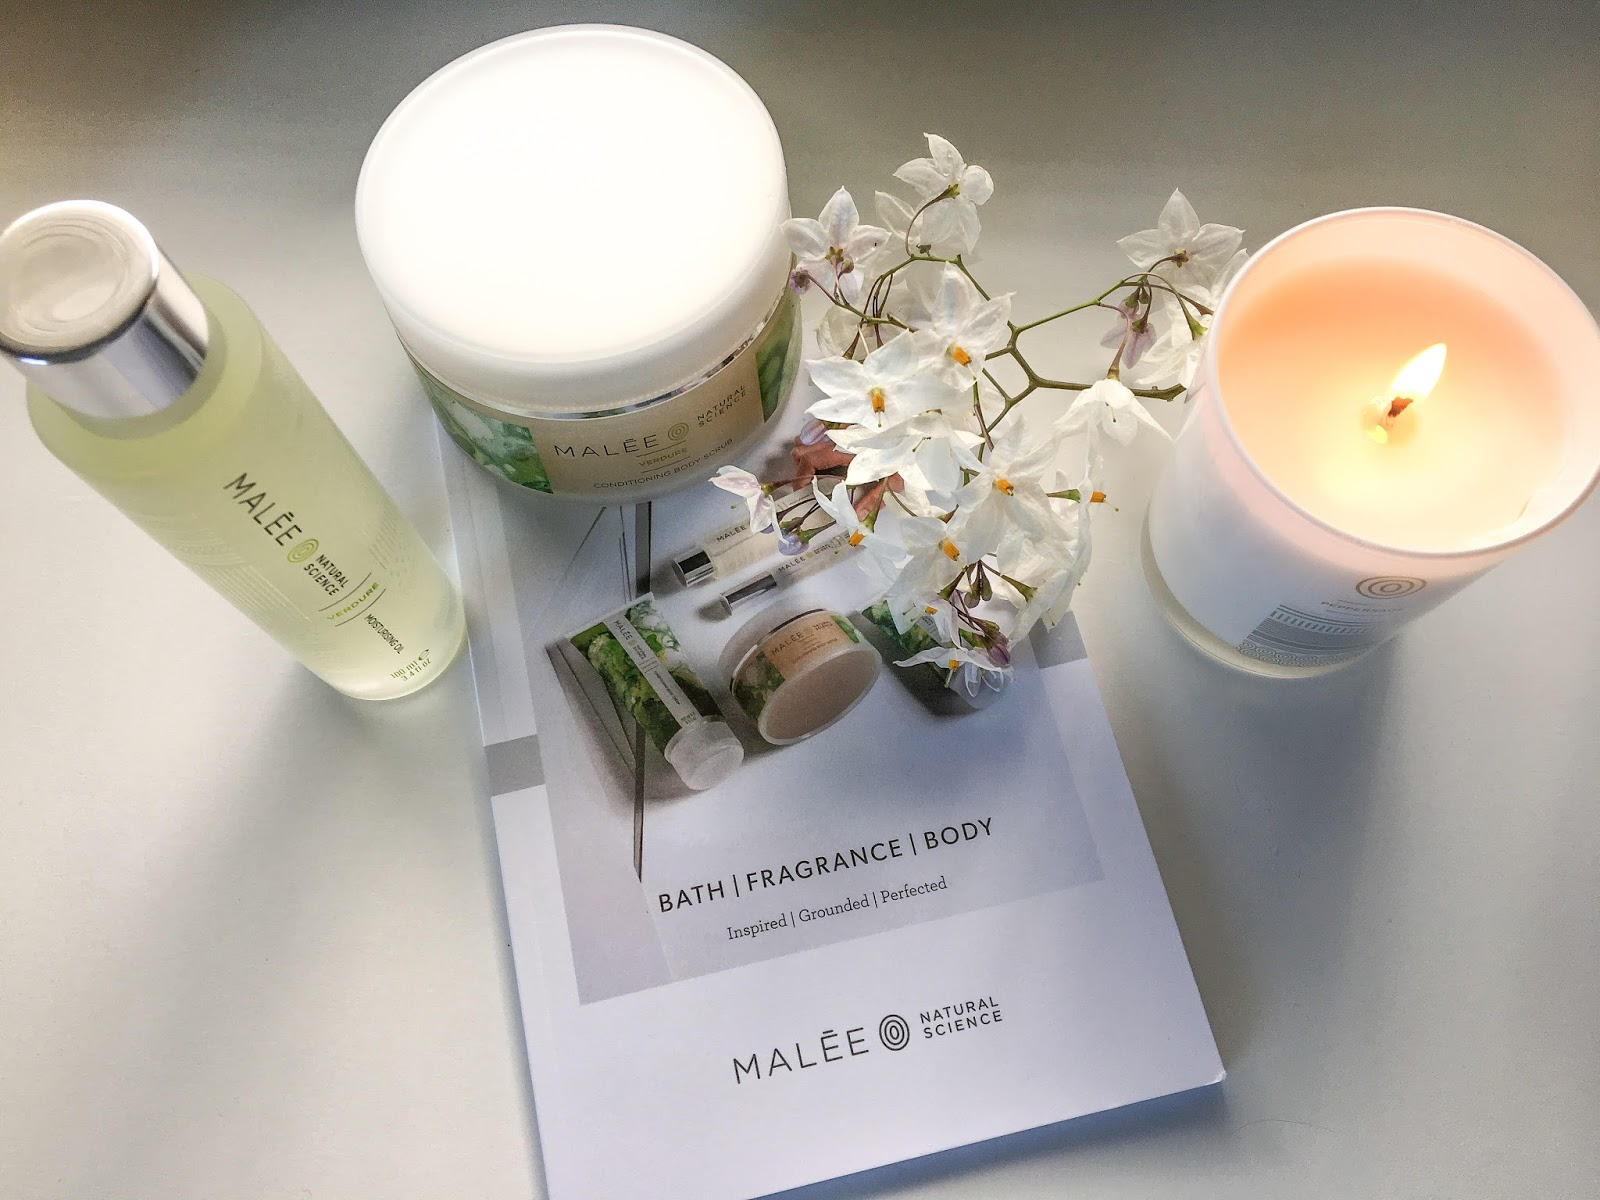 Review of MAlee